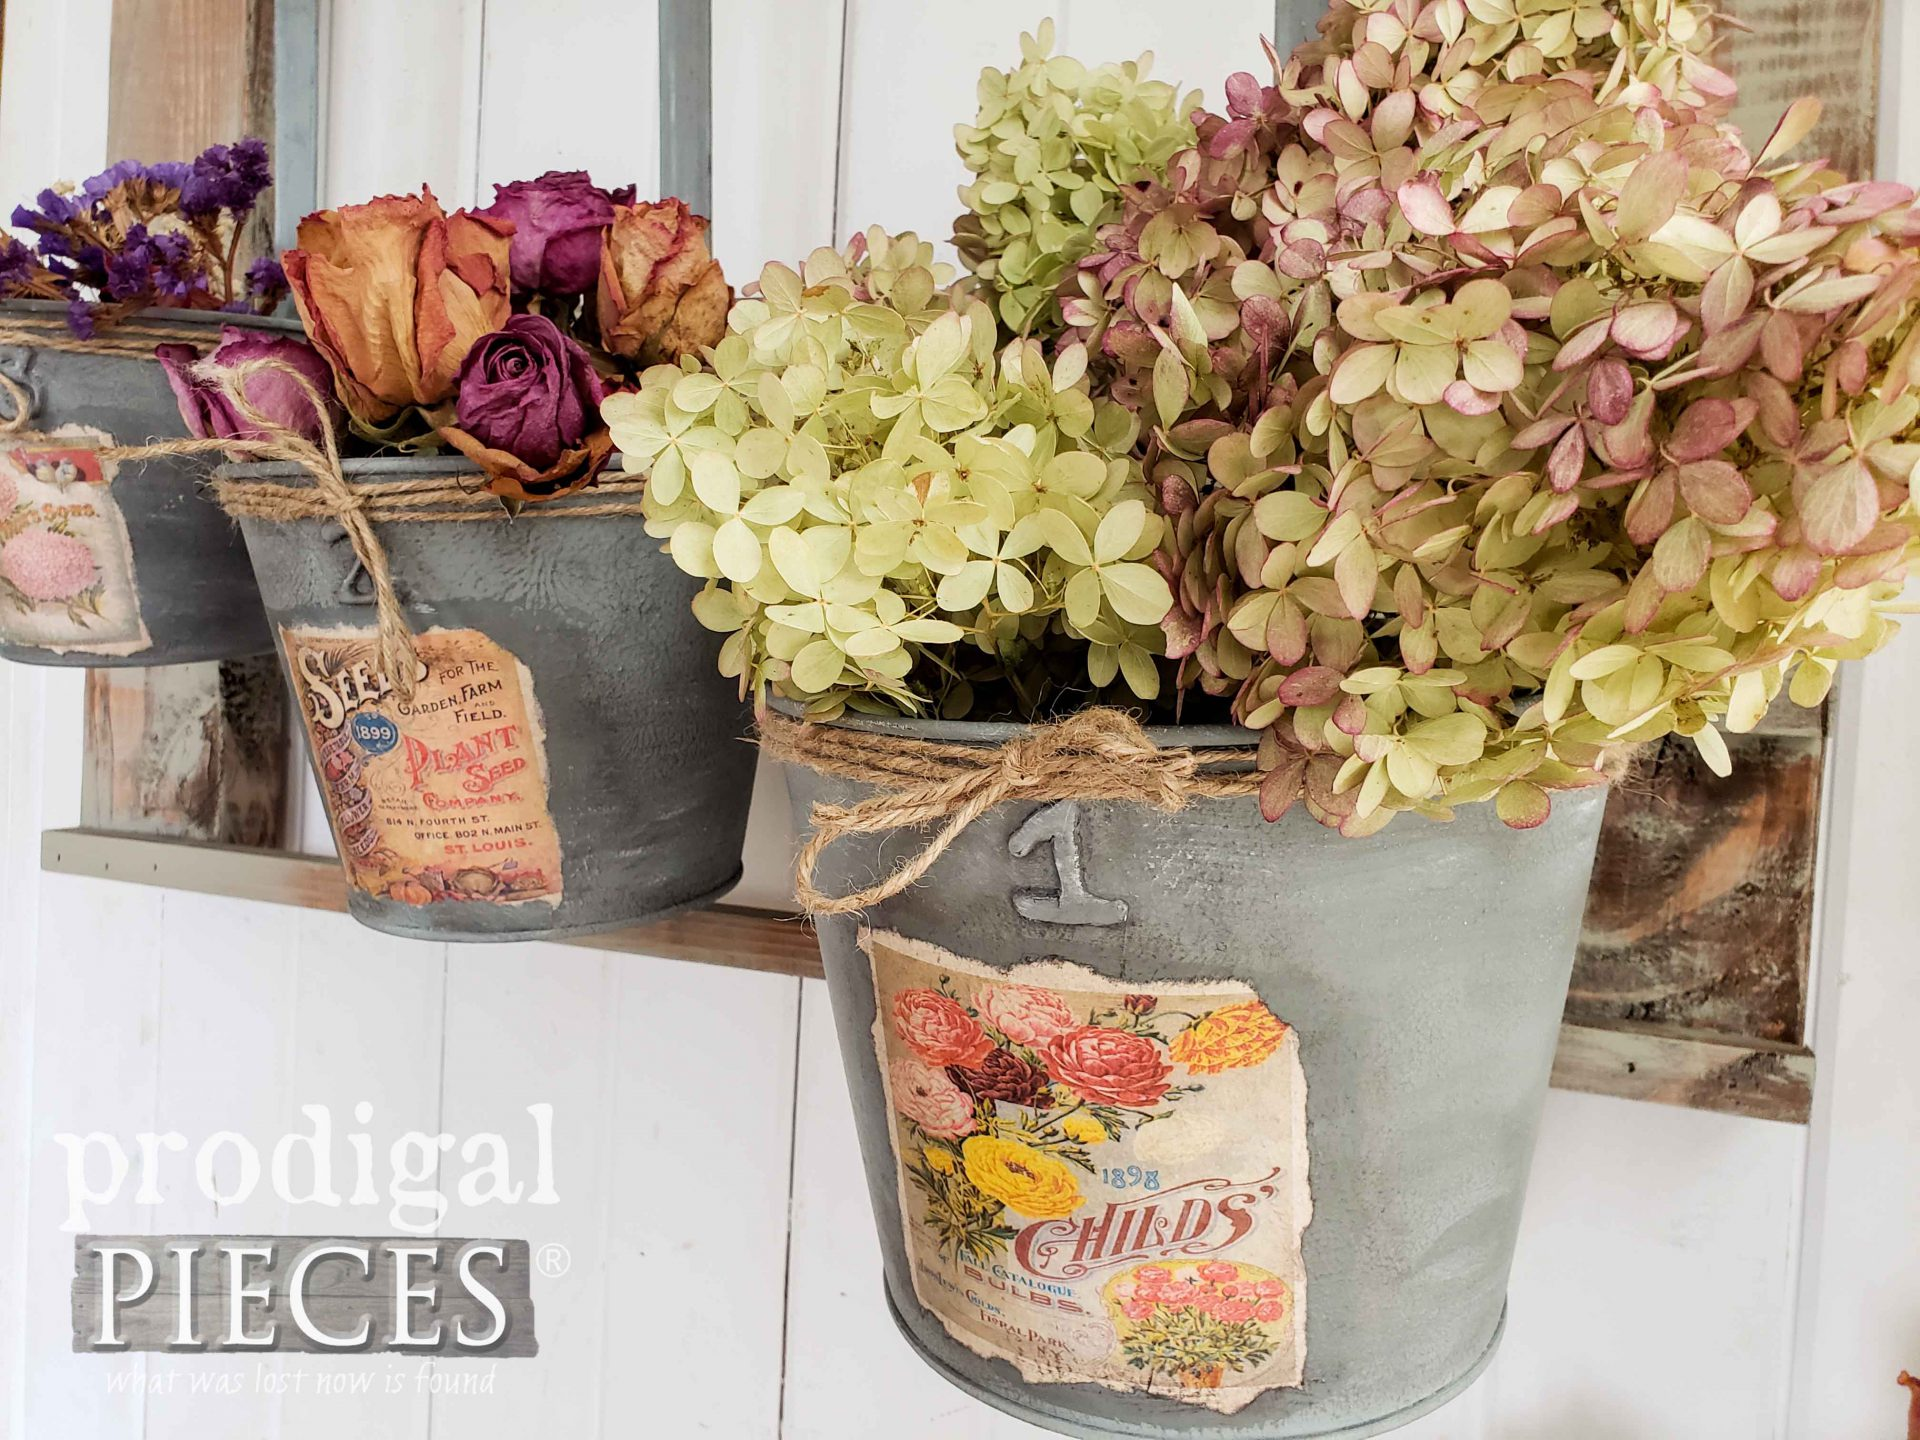 Handmade Flower Display from Upcycled Christmas Decor by Larissa of Prodigal Pieces | prodigalpieces.com #prodigalpieces #diy #farmhouse #home #homedecor